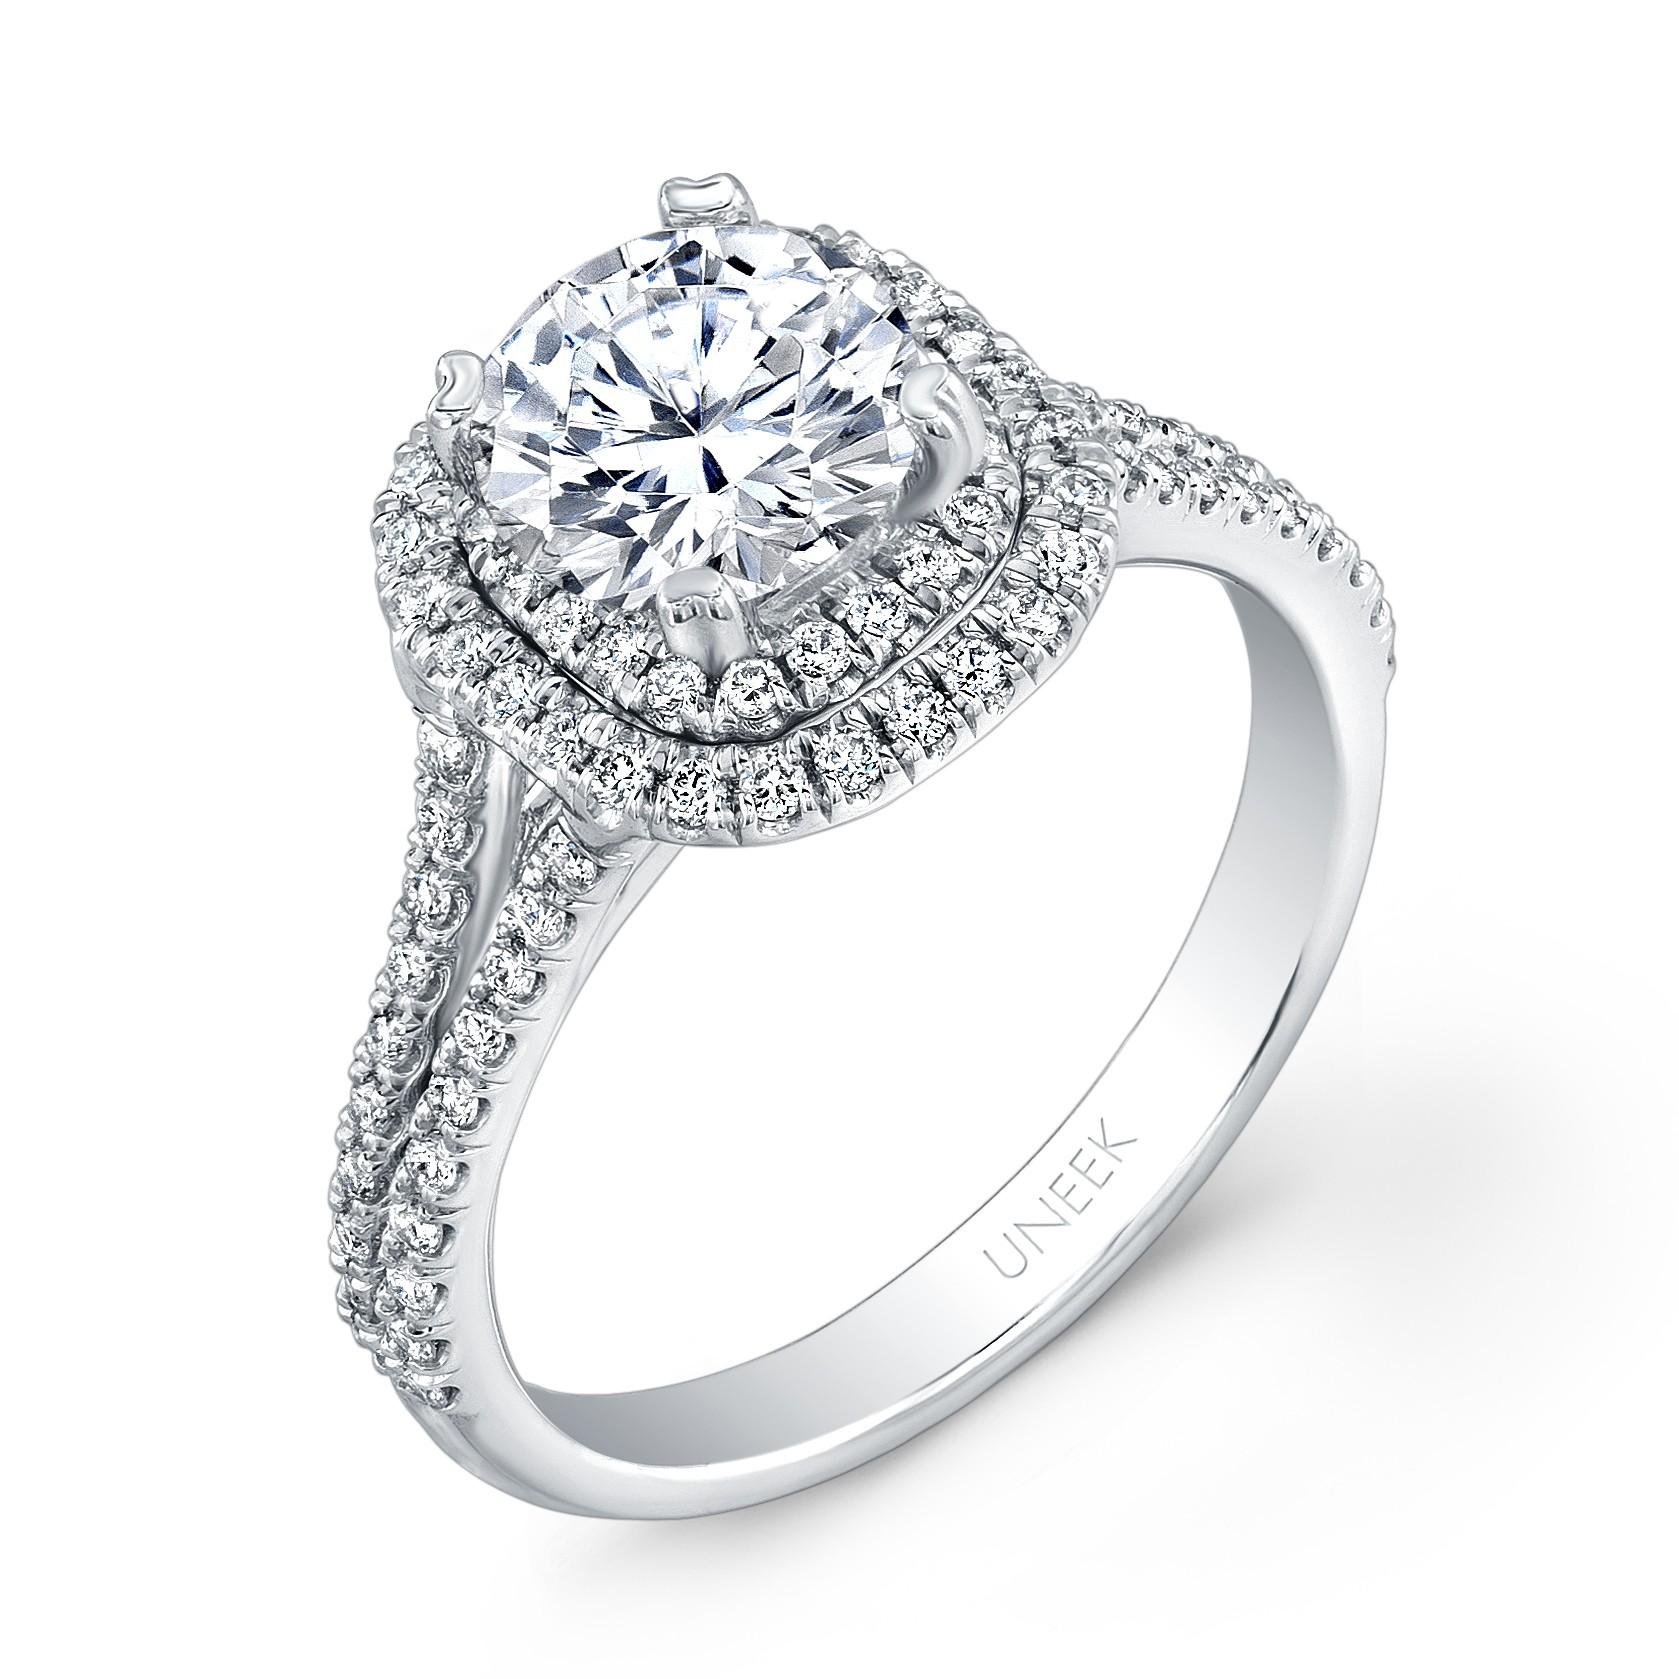 Uneek Round Diamond Engagement Ring with Dreamy Cushion Shaped Double Halo an